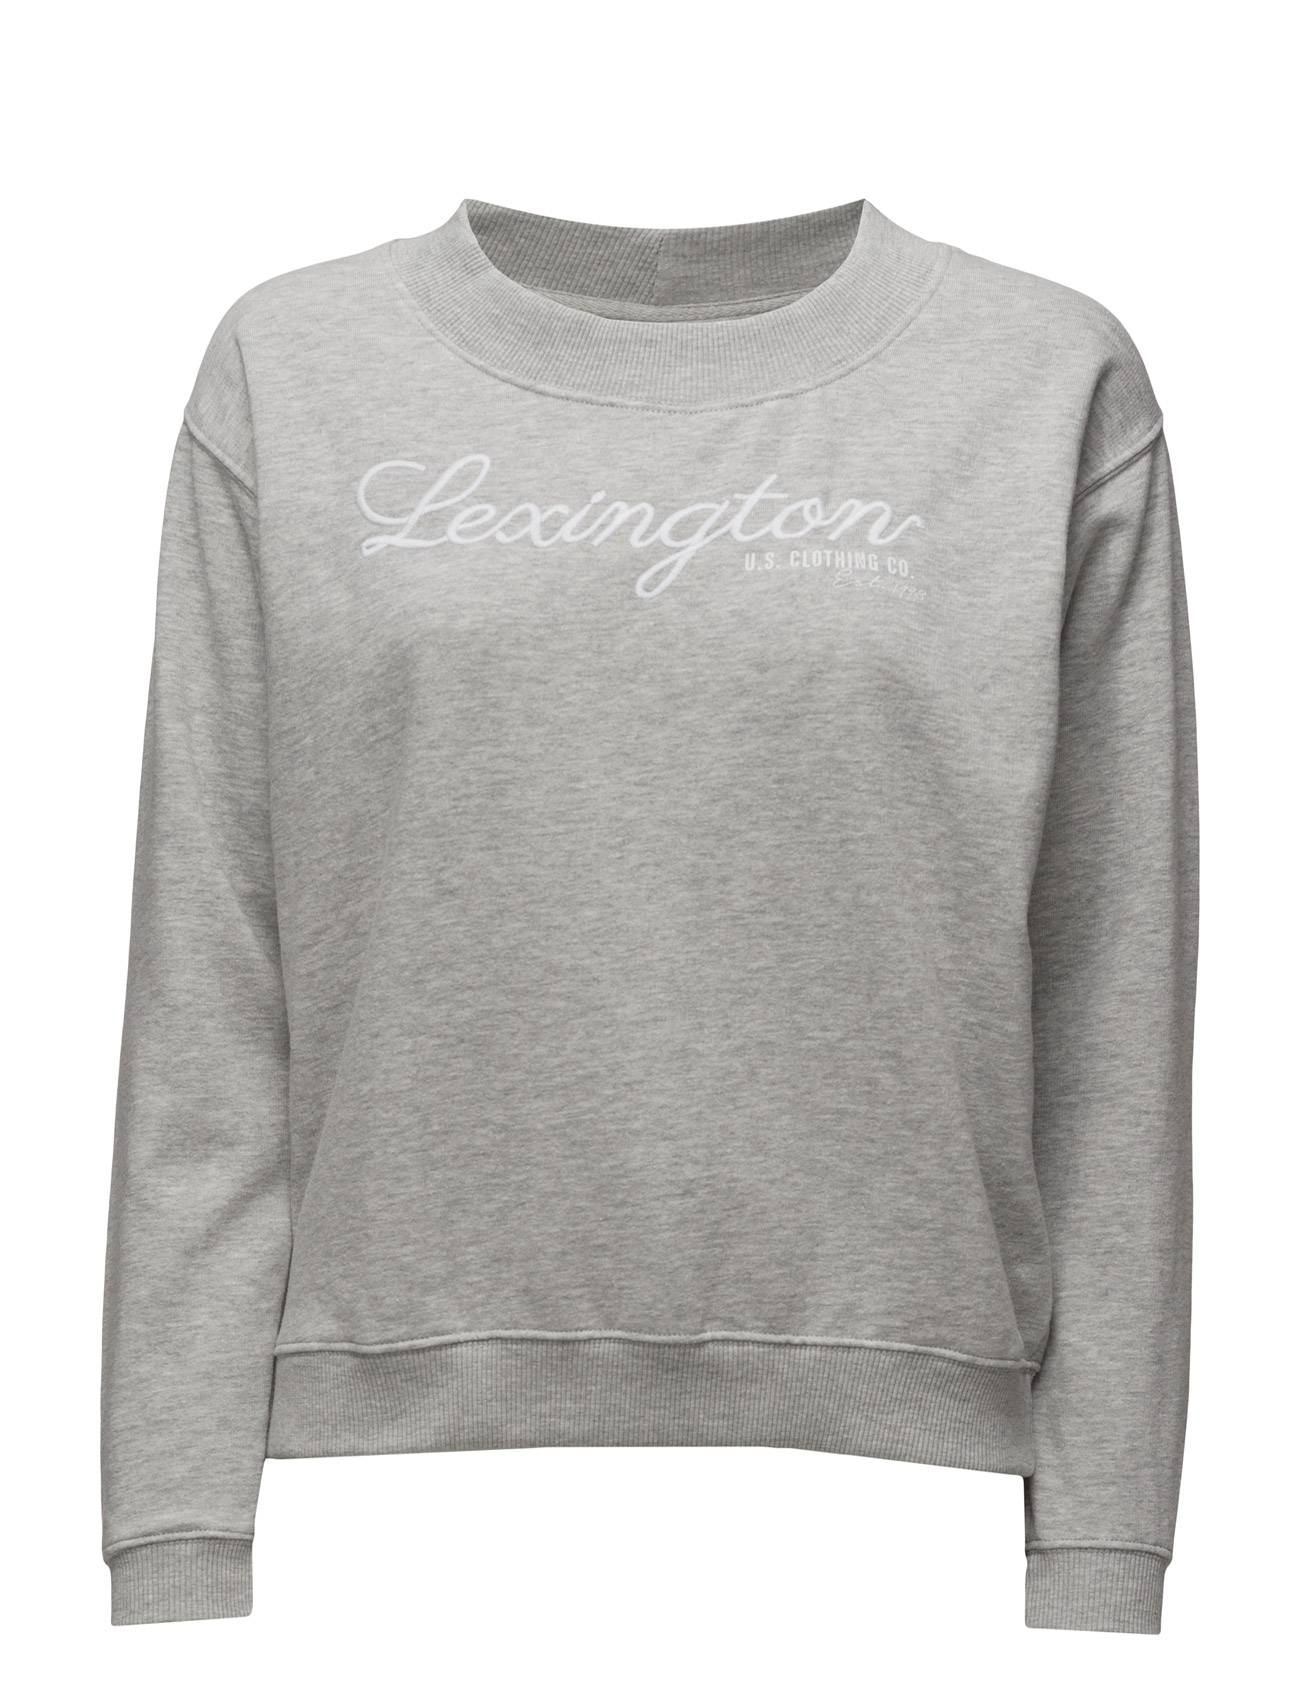 Lexington Company Jaida Sweatshirt